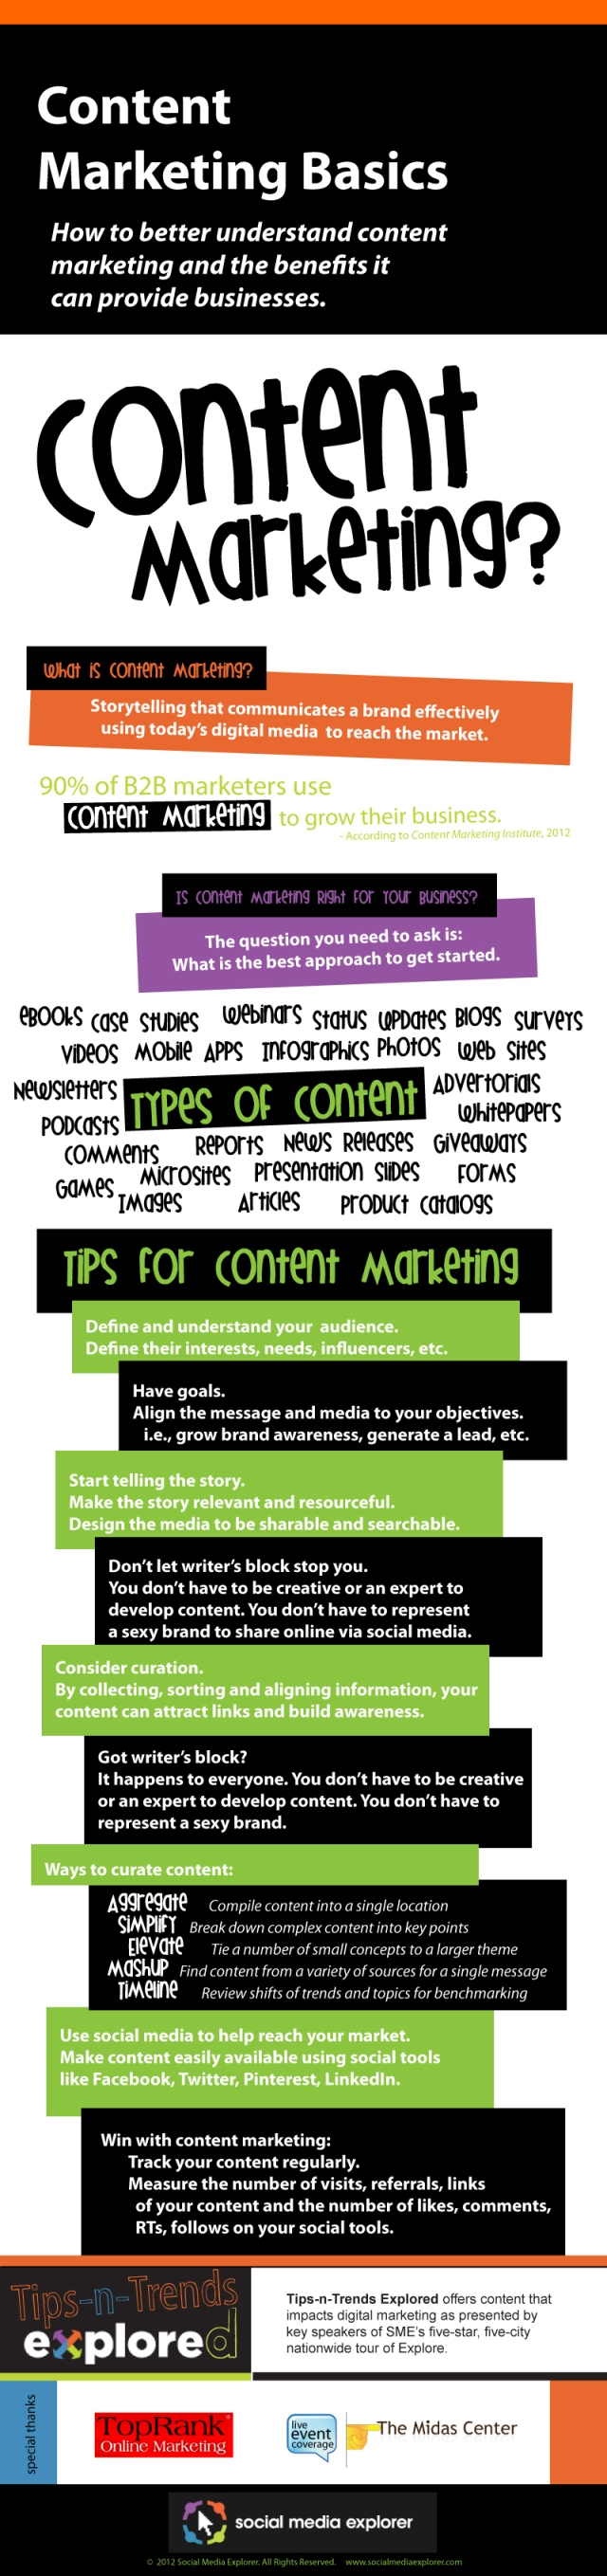 Content Marketing Basics 26 Types of Content You Should be Sharing